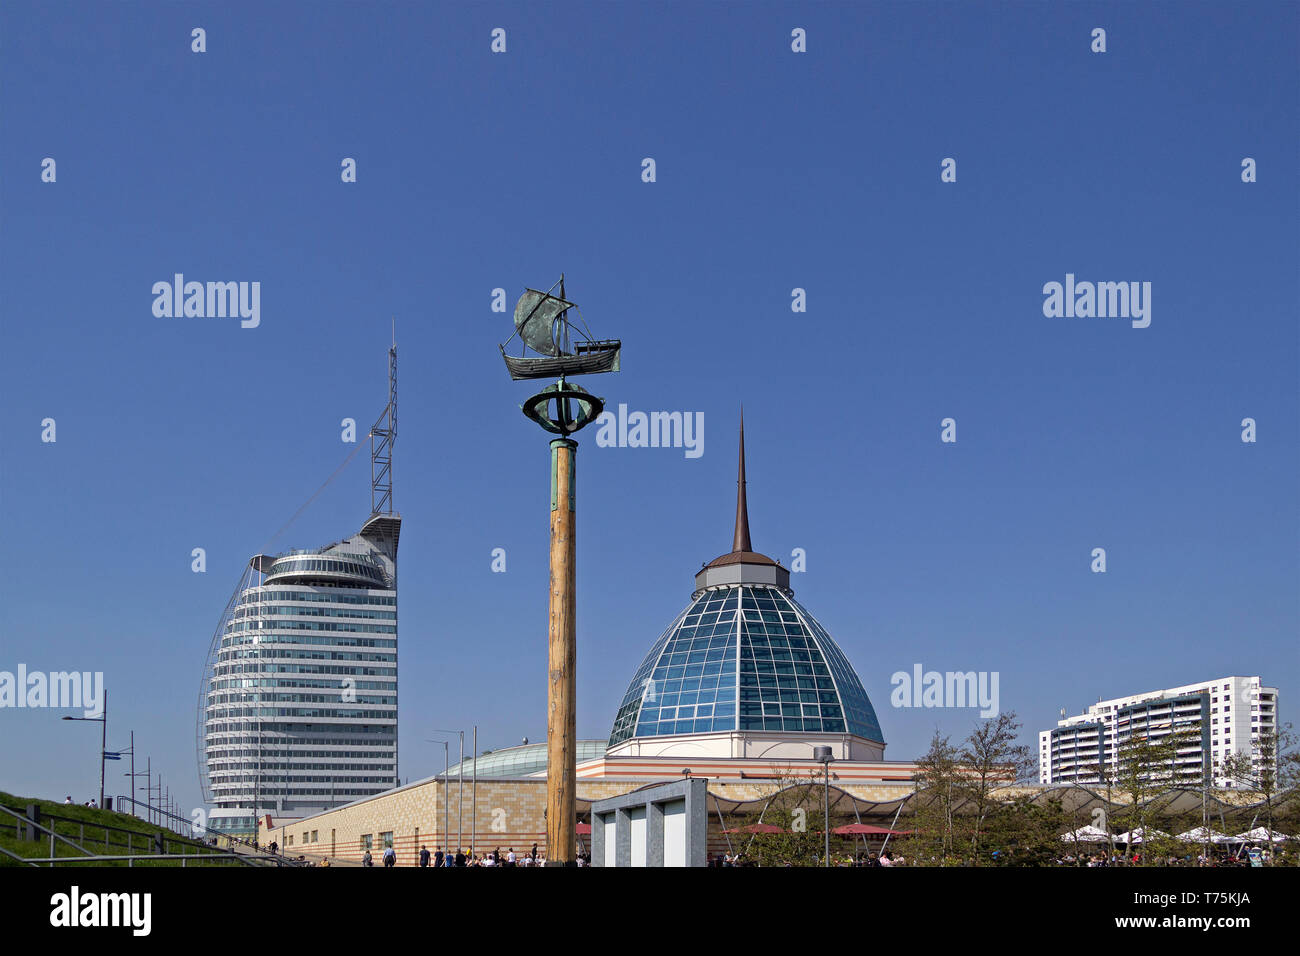 ATLANTIC Hotel Sail City, sailing ship memorial and Mediterraneo, Bremerhaven, Bremen, Germany - Stock Image